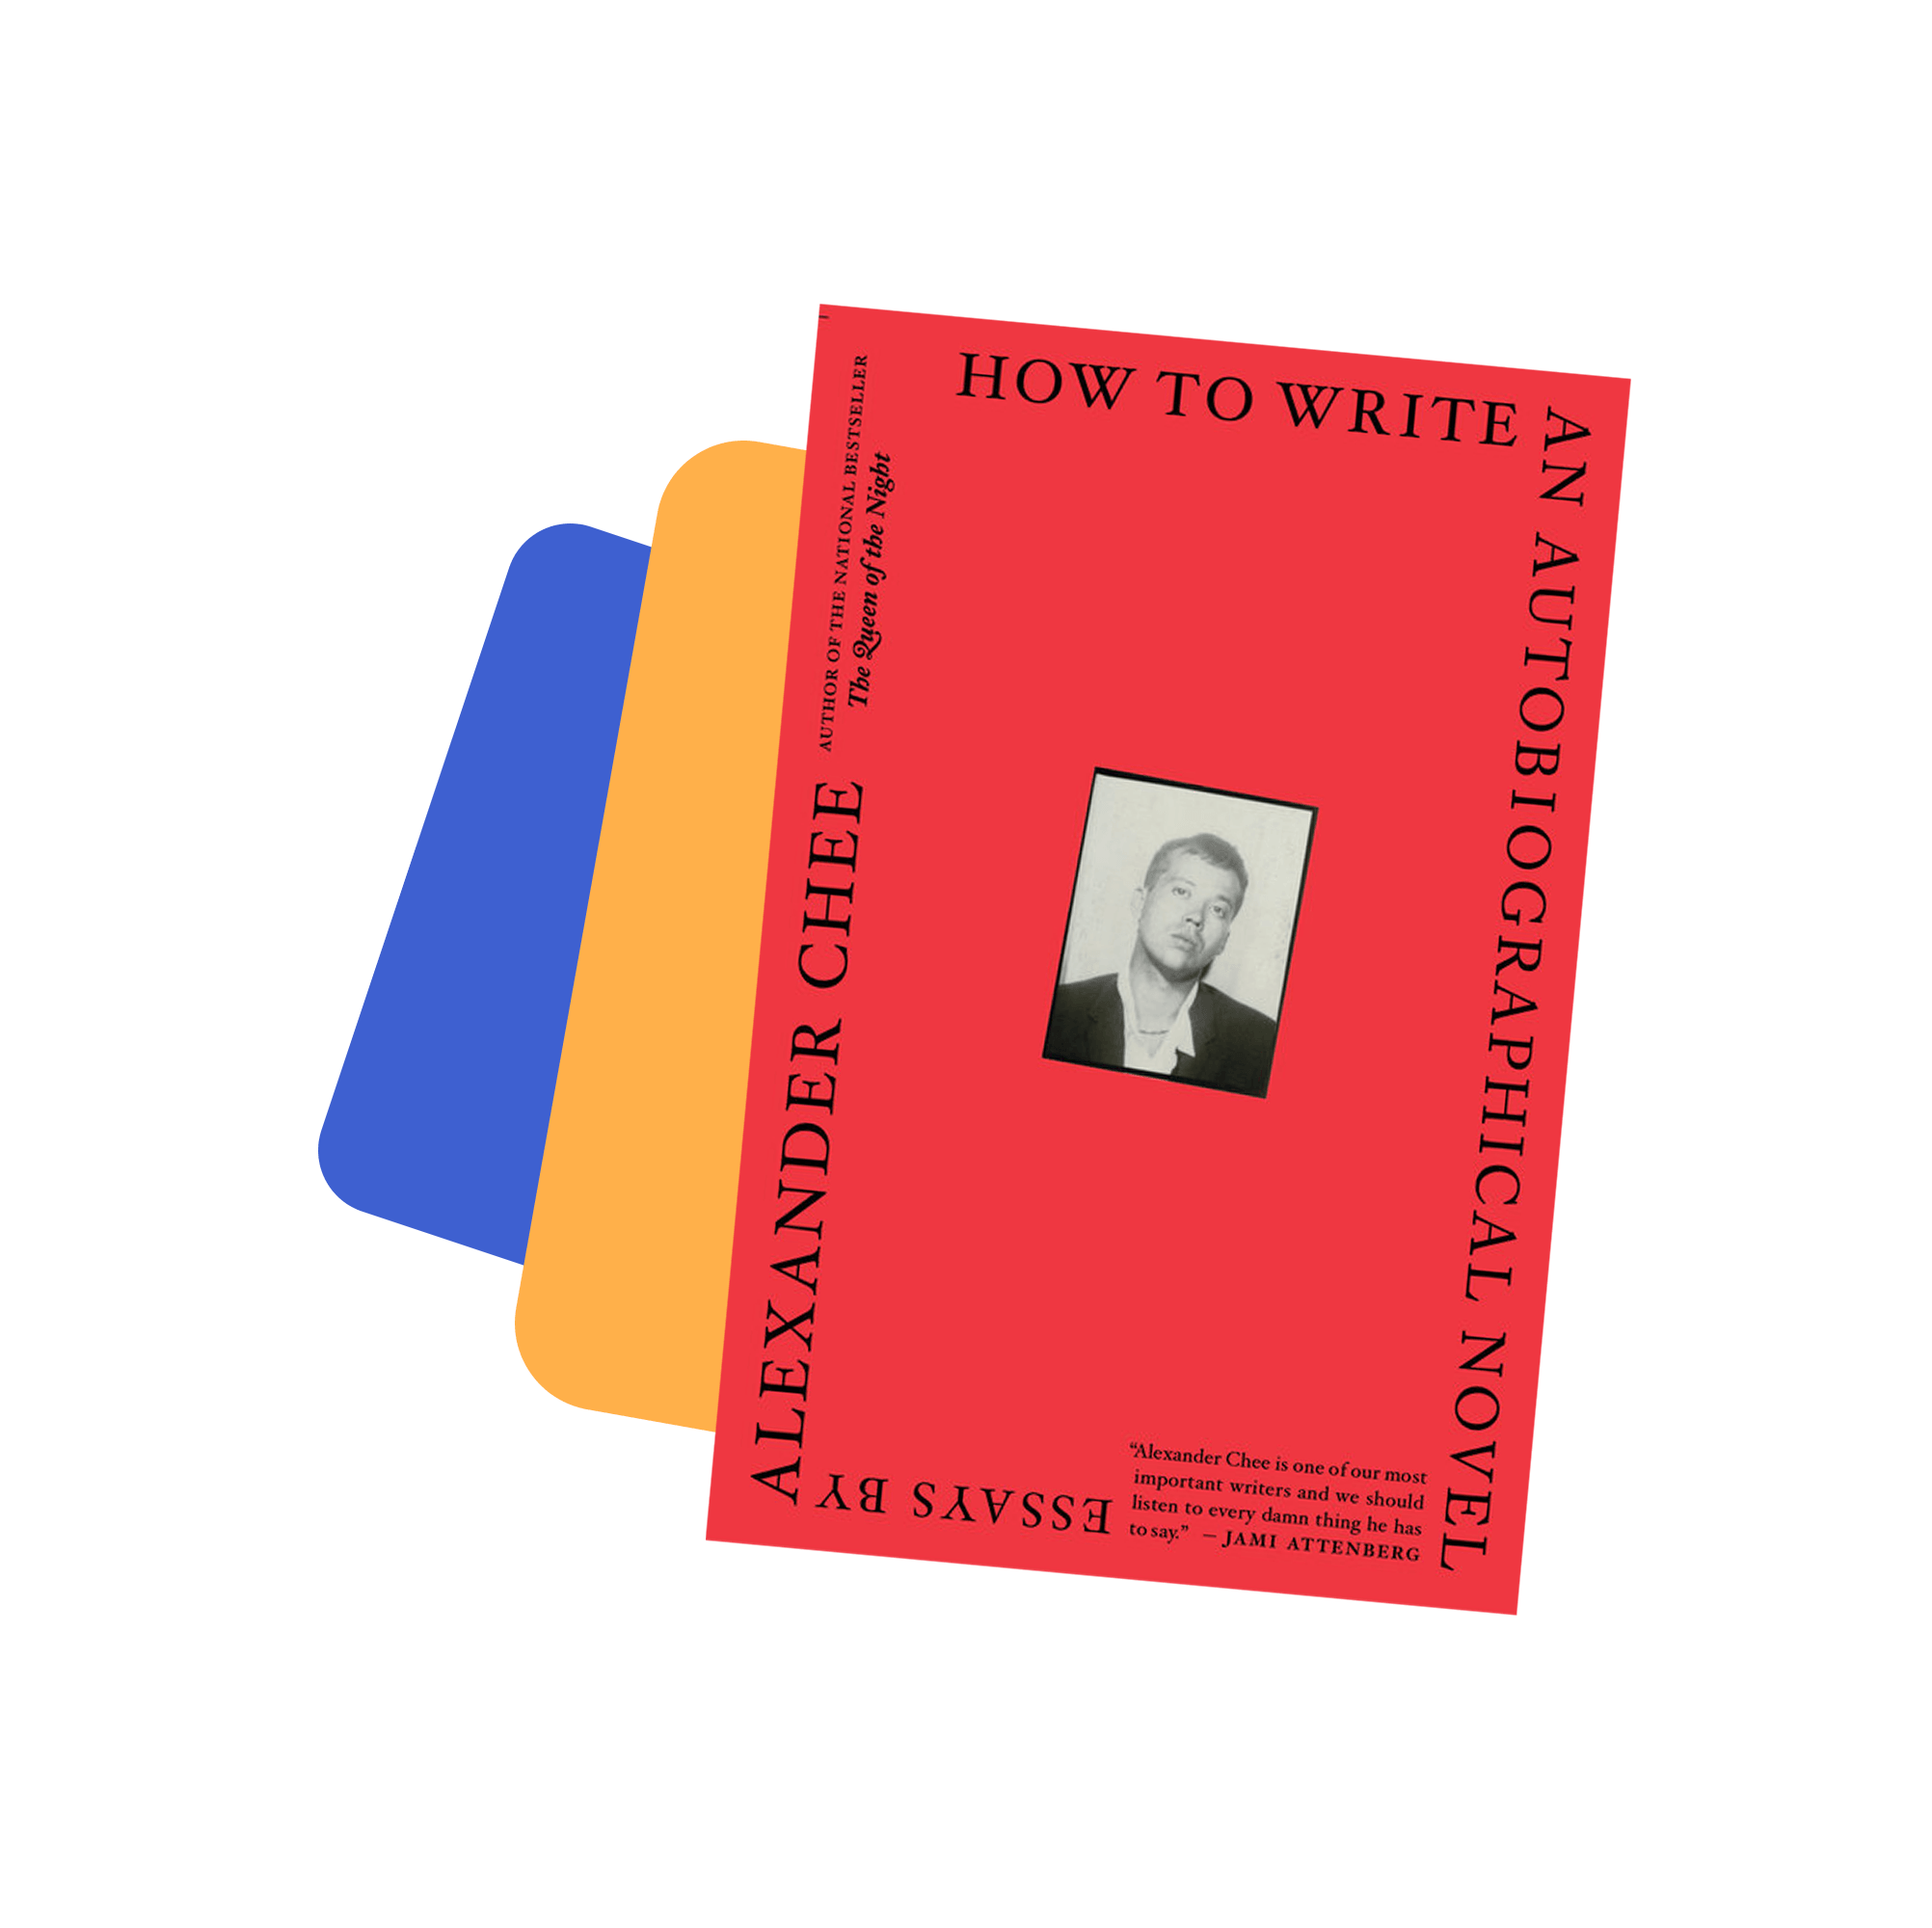 Book jacket cover for How to Write an Autobiographical Novel. Essays by Alexander Chee